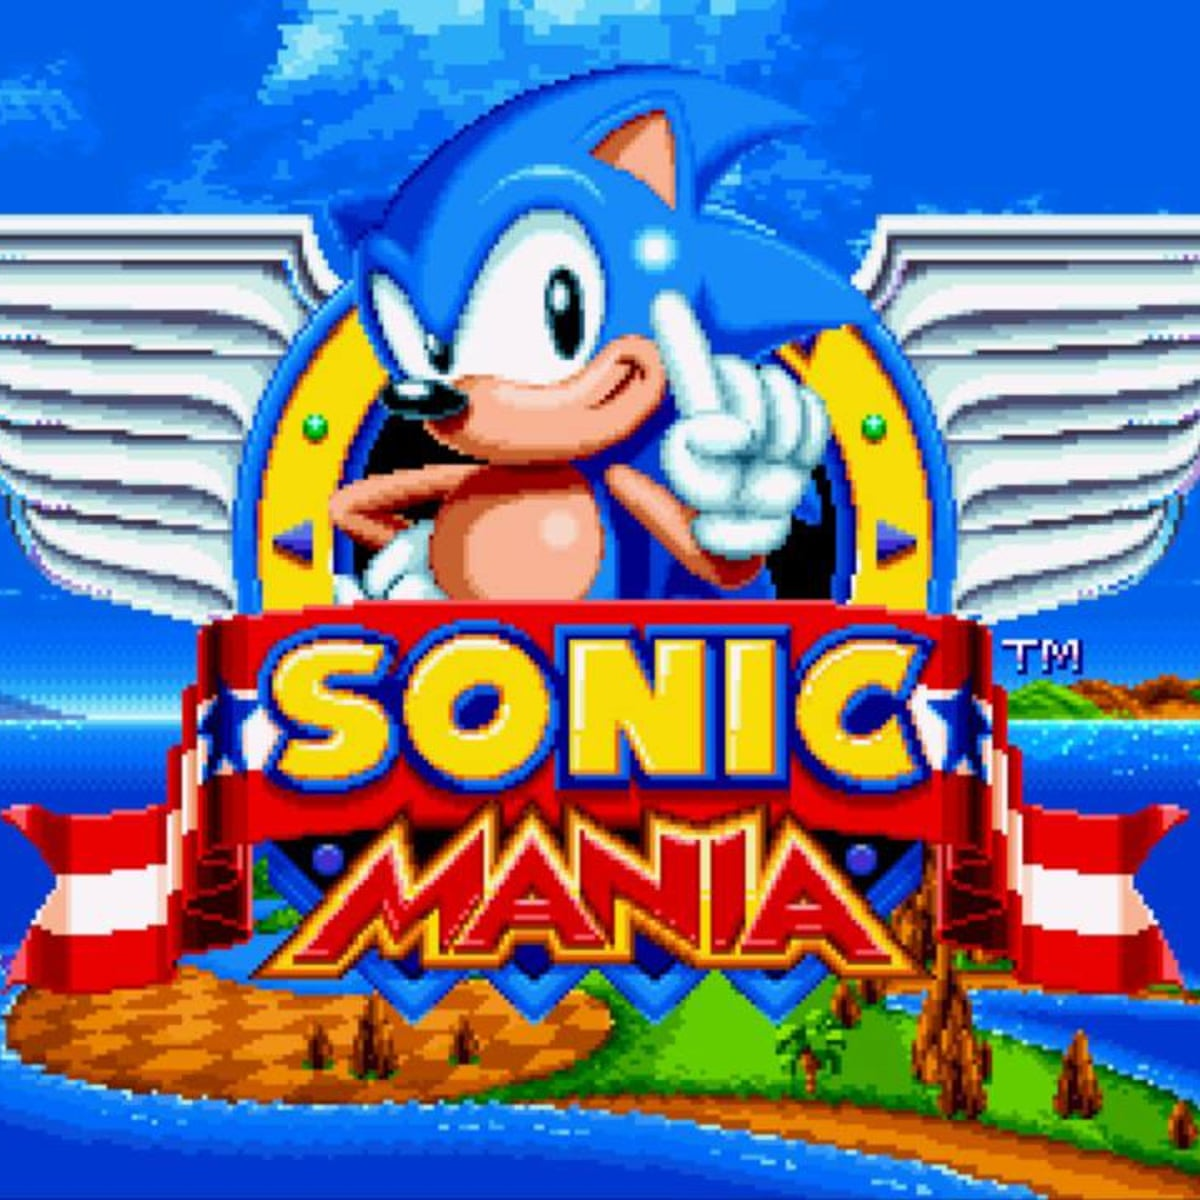 Sonic Mania Review A Frenetic Remix Of A Much Loved Mega Drive Classic Games The Guardian